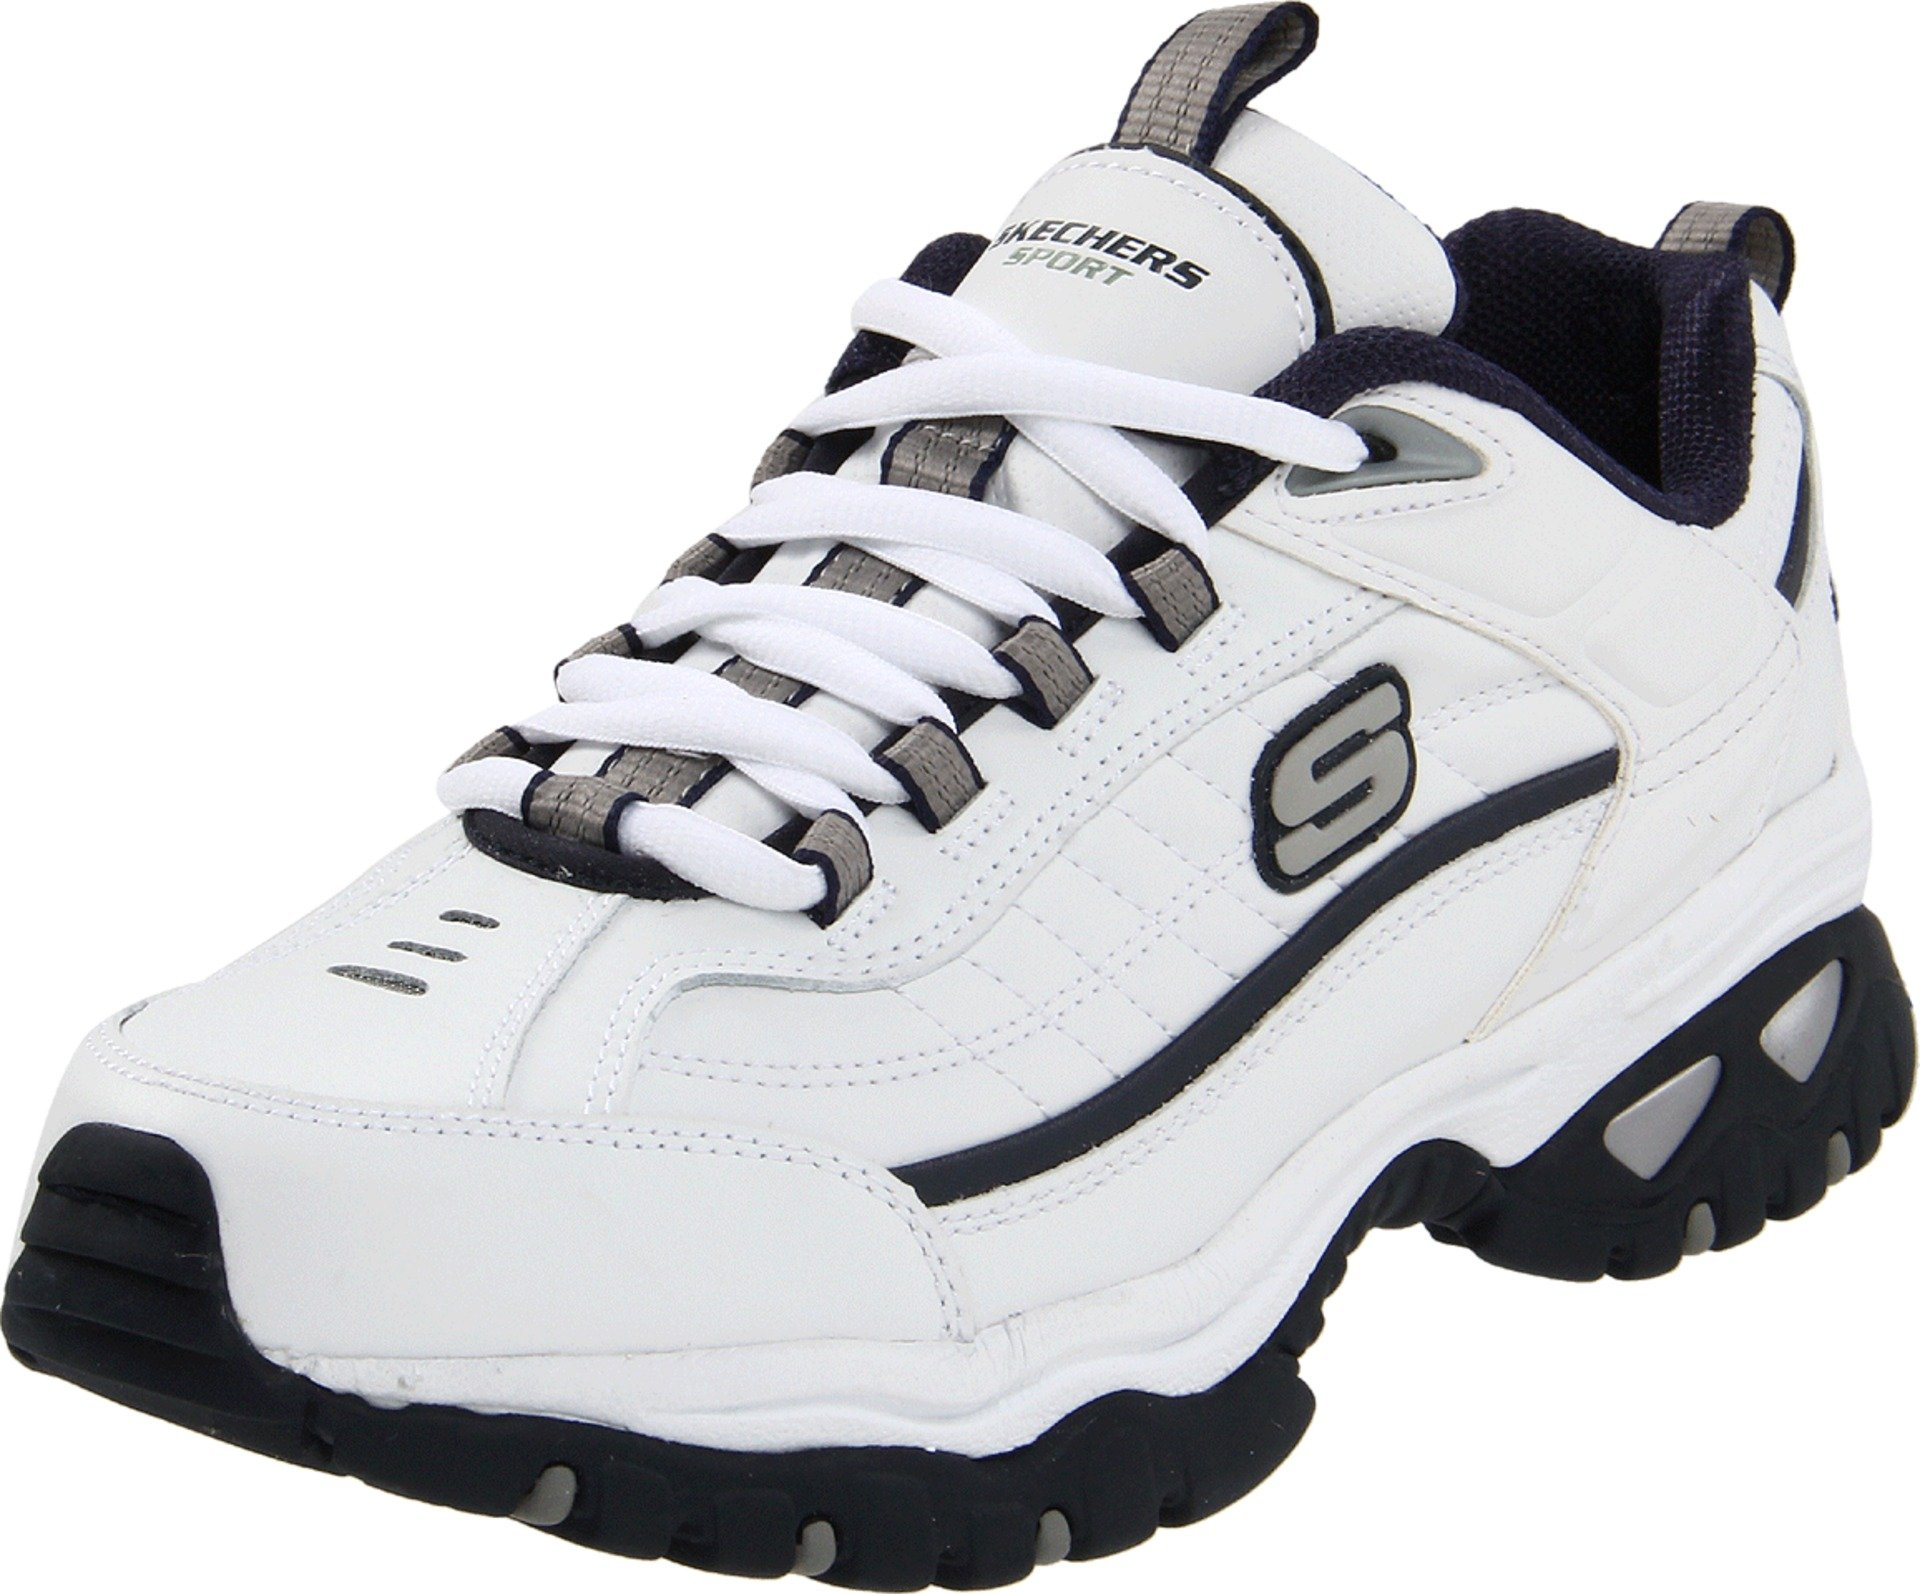 Skechers Sport Men's Energy Afterburn Lace-Up Sneaker,White/Navy,8.5 XW US by Skechers